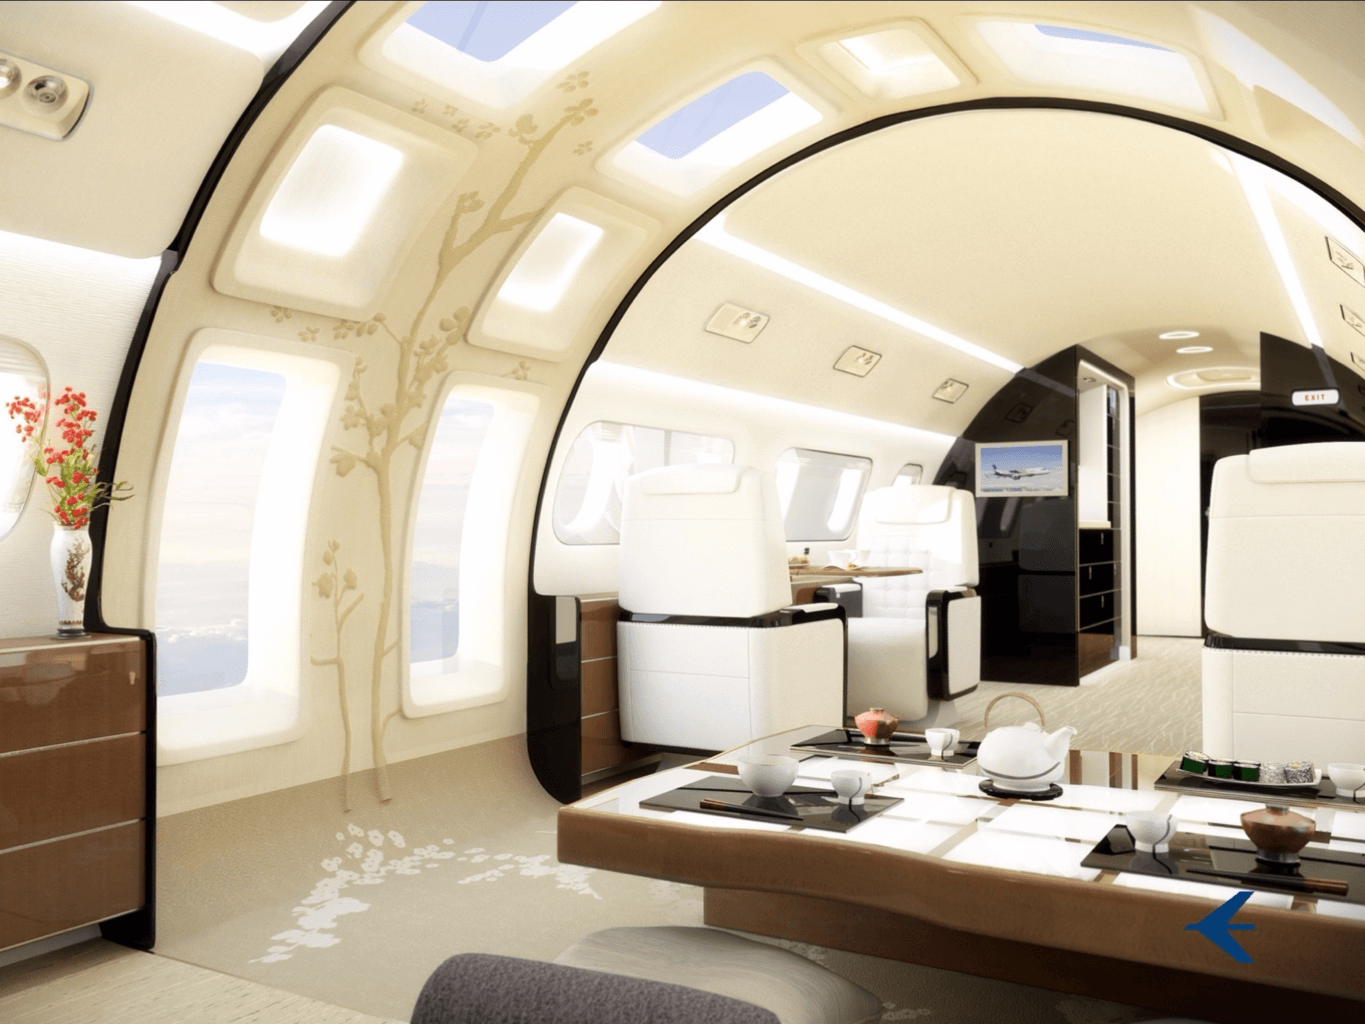 This_beautiful_new_plane_has-76335b0722d8278fc1ccce758abd8e94